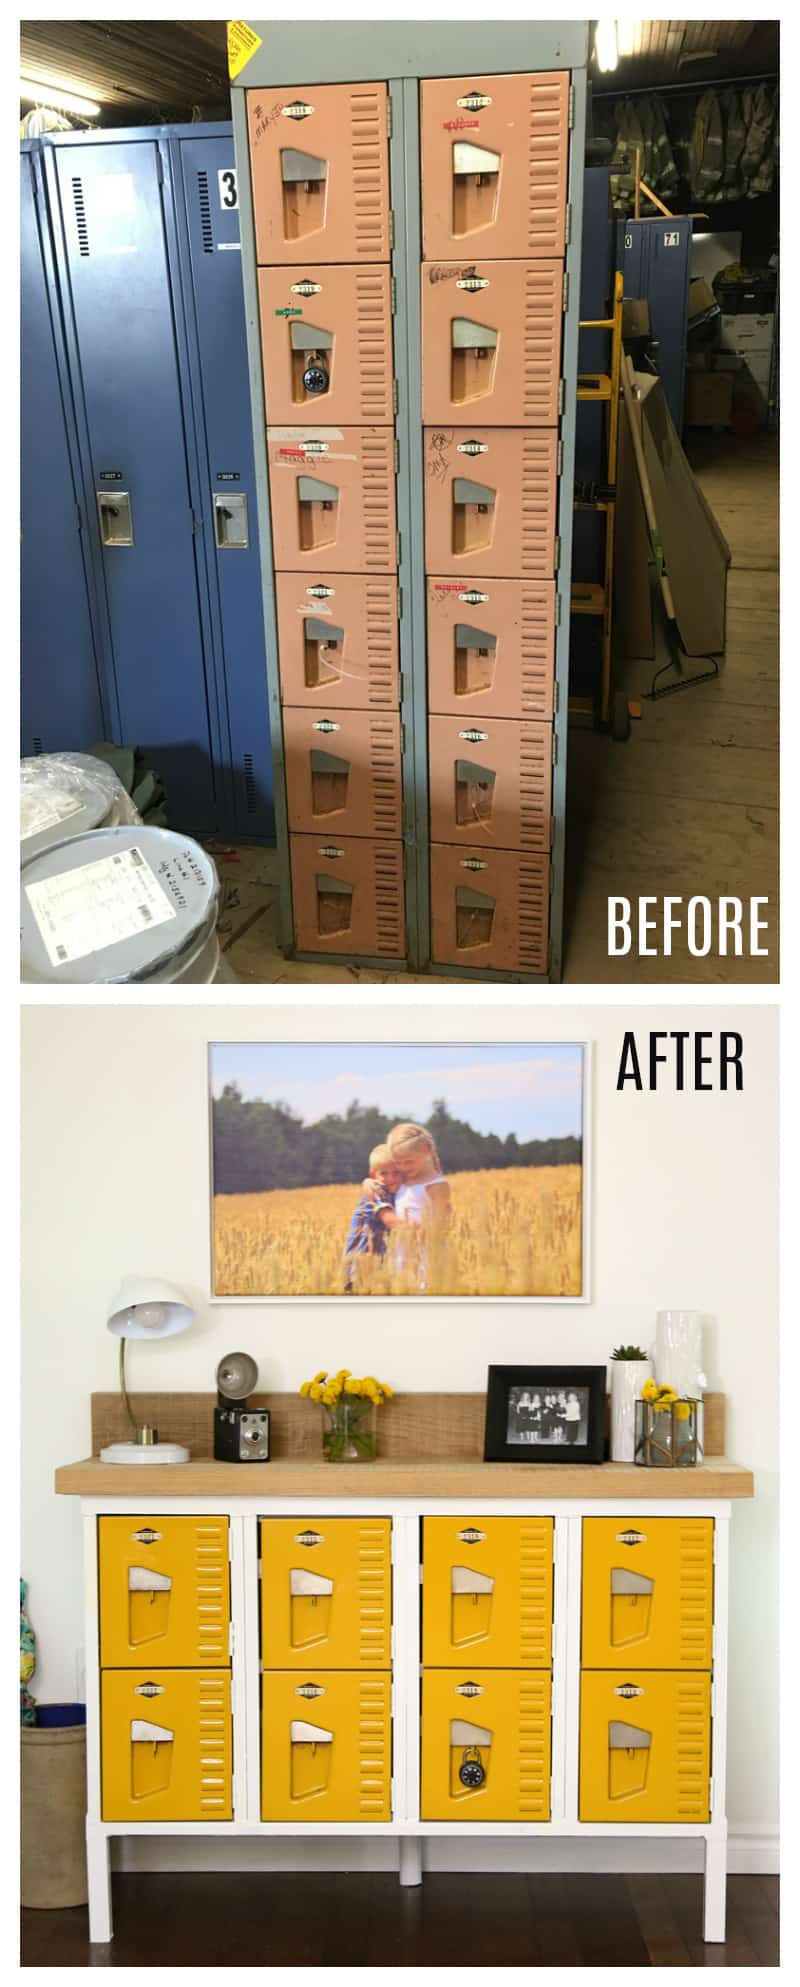 Letu0027s Have A Look At The Vintage Locker Console Table Before And Afteru2026